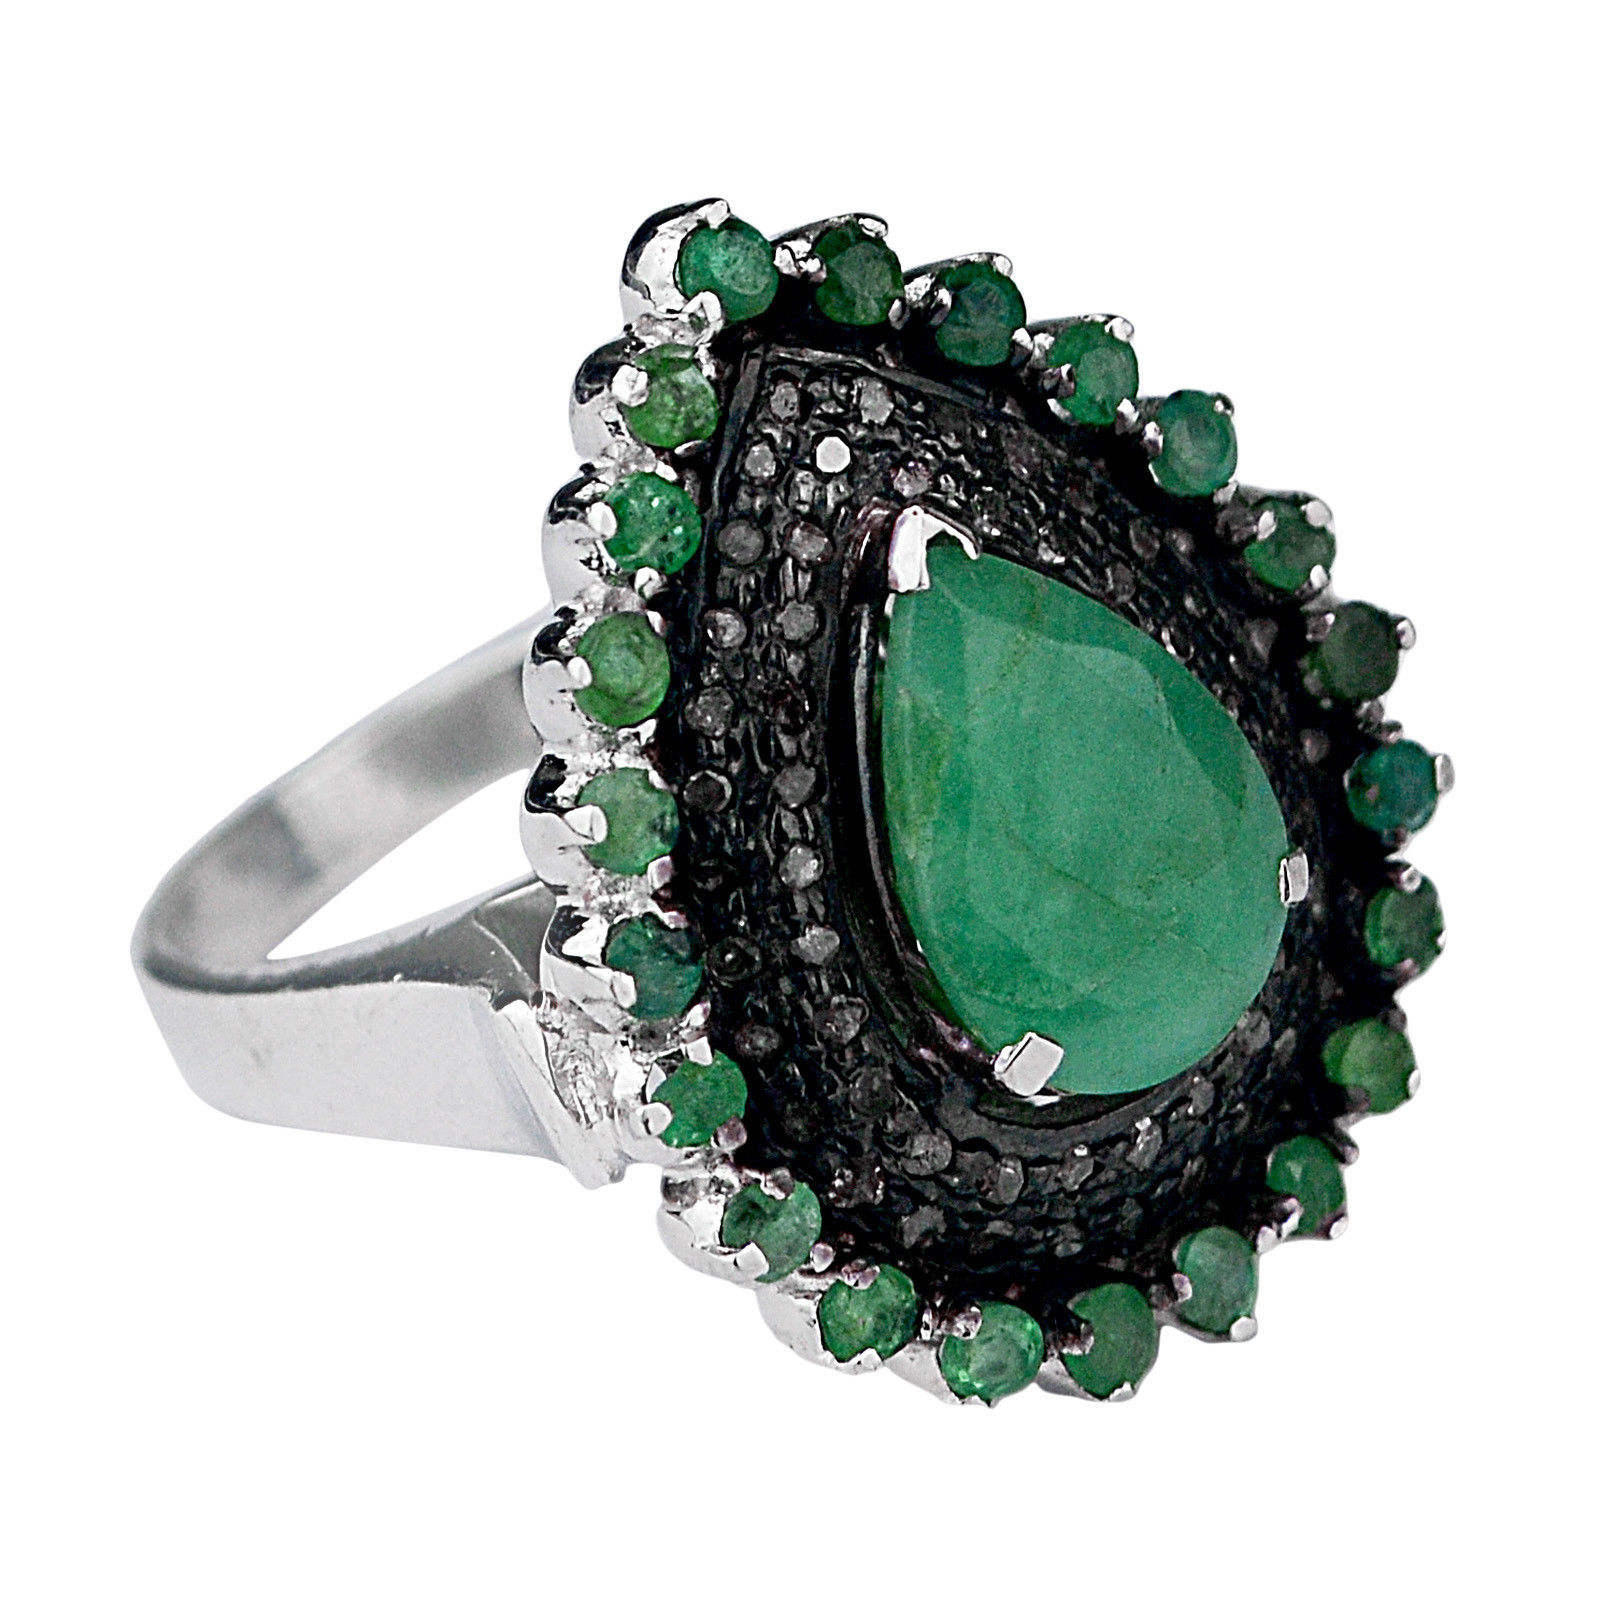 0.4 Cts Natural diamond, natural emerald vintage 925 Sterling Silver oxidized Ring jewellery collection